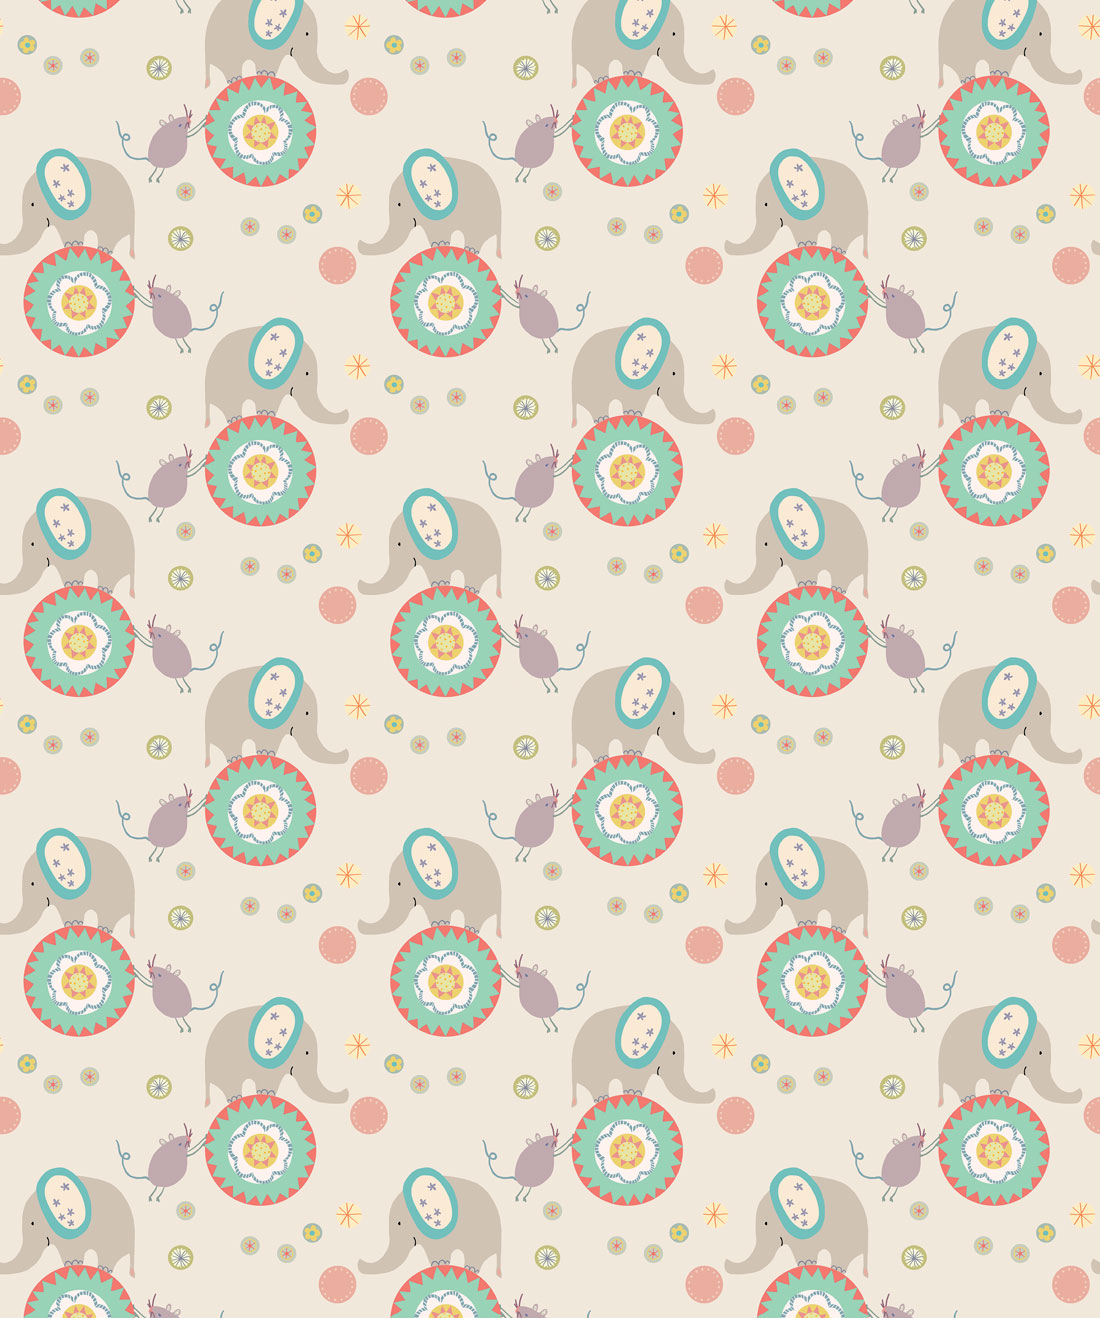 Elephants & Mice Wallpaper